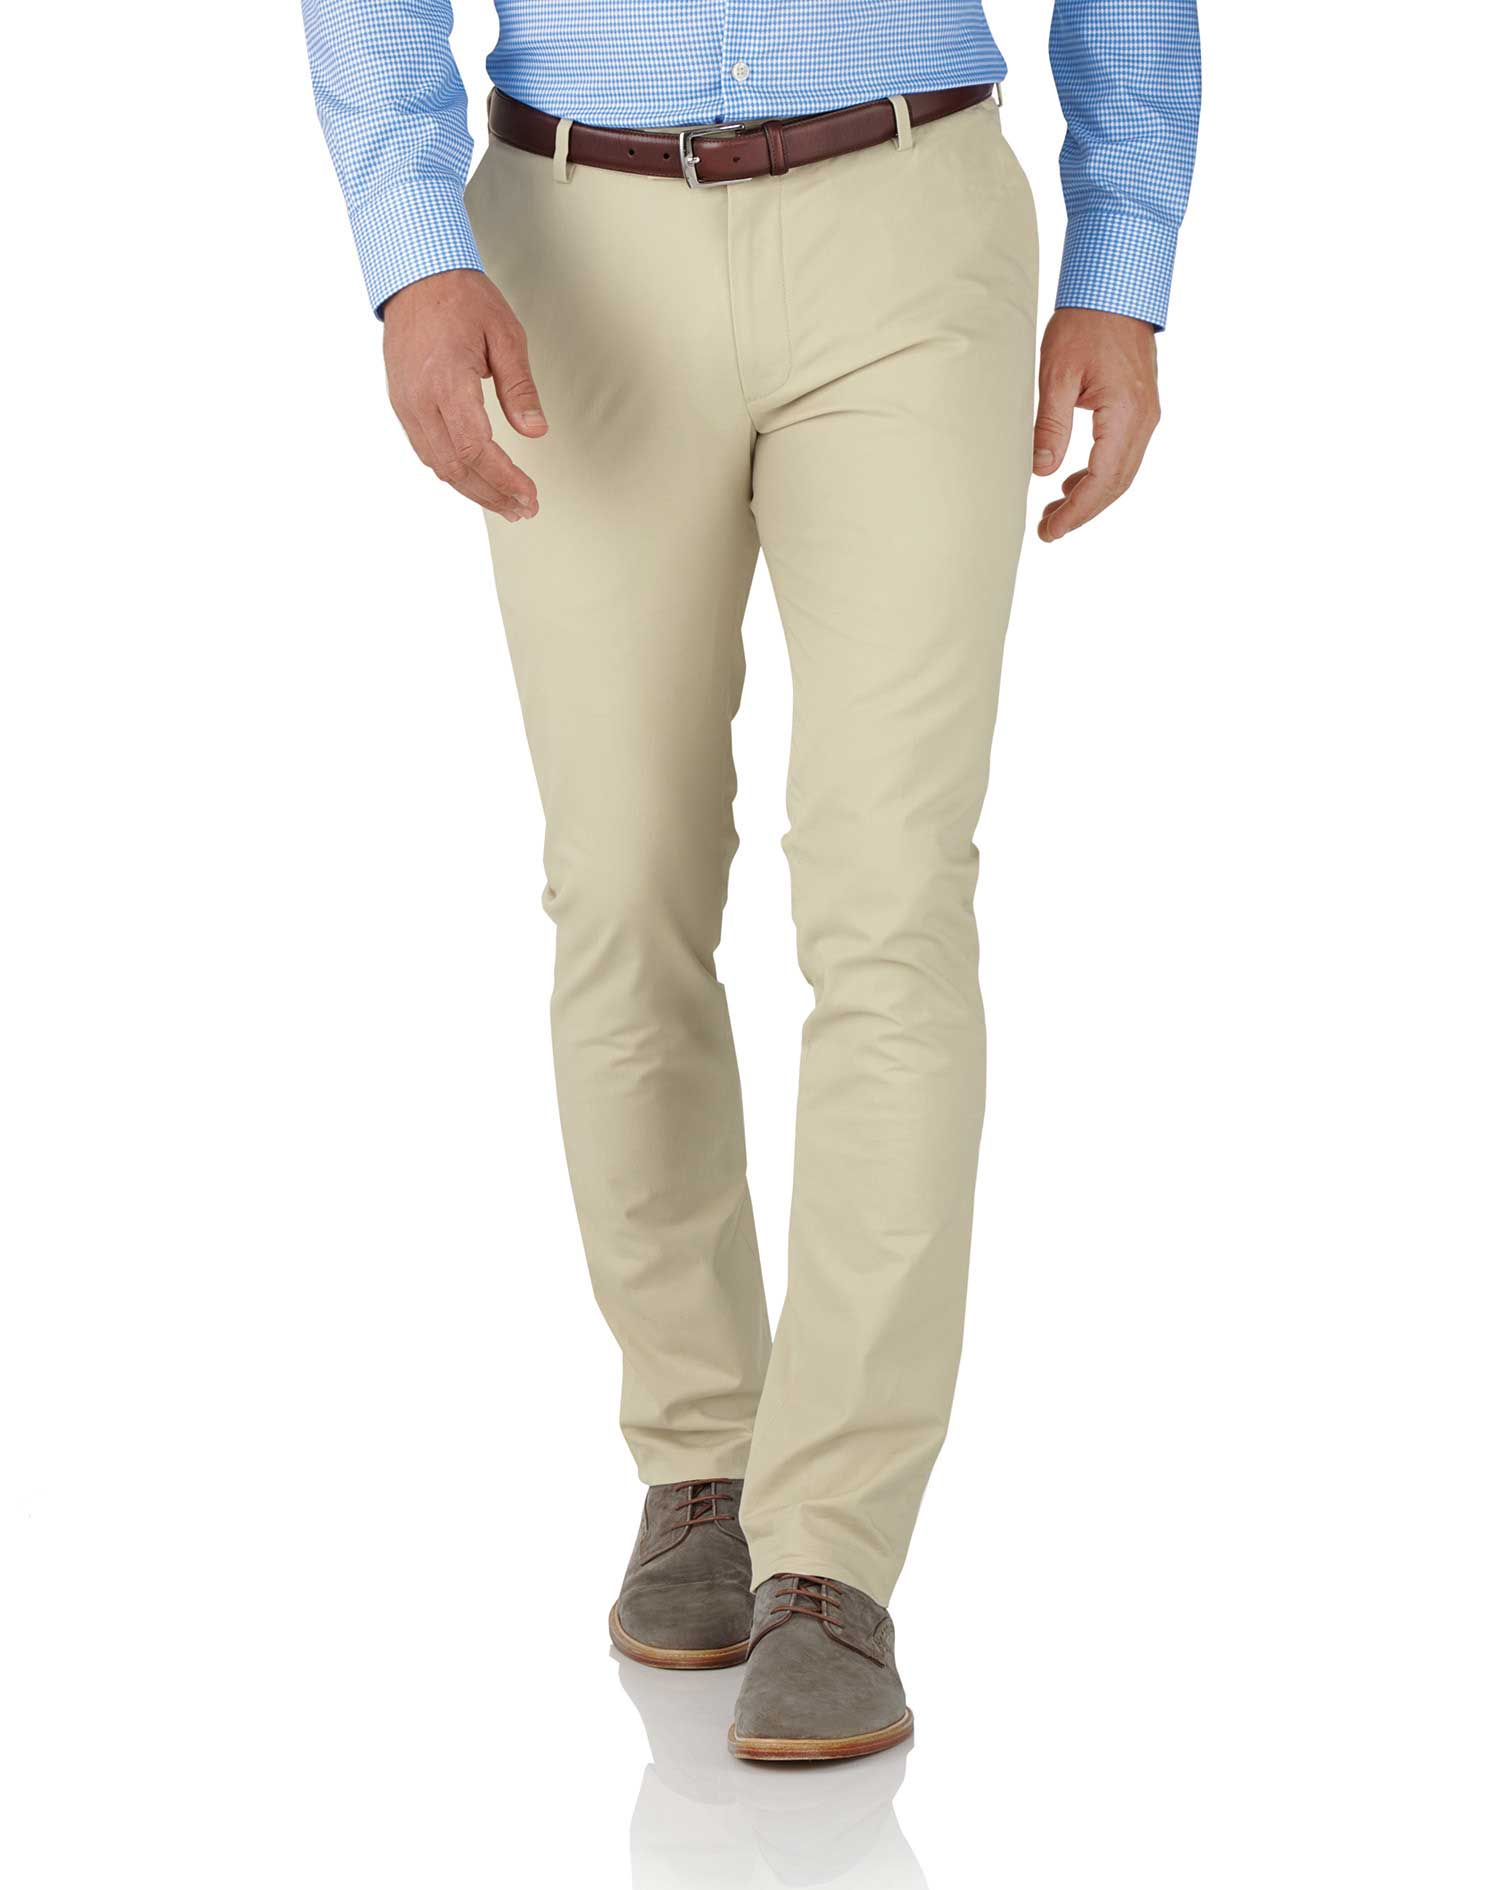 Stone Extra Slim Fit Stretch Cotton Chino Trousers Size W32 L32 by Charles Tyrwhitt